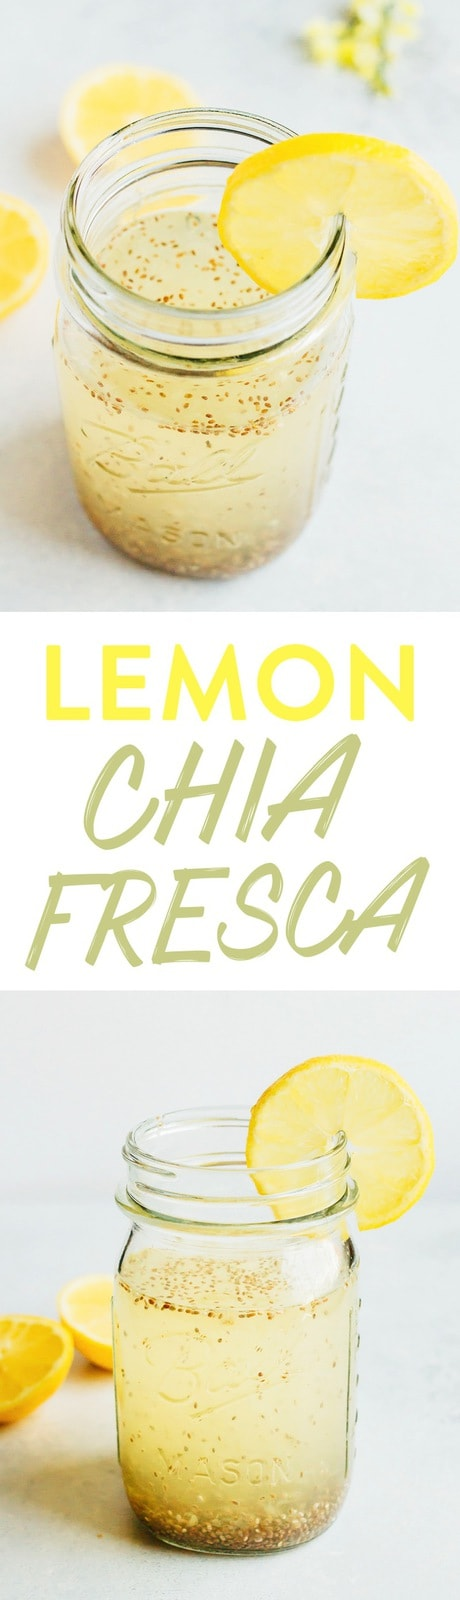 Sip on this lemon chia fresca, a refreshing lemonade-like drink with chia seeds that's great for energy and boosting your metabolism.